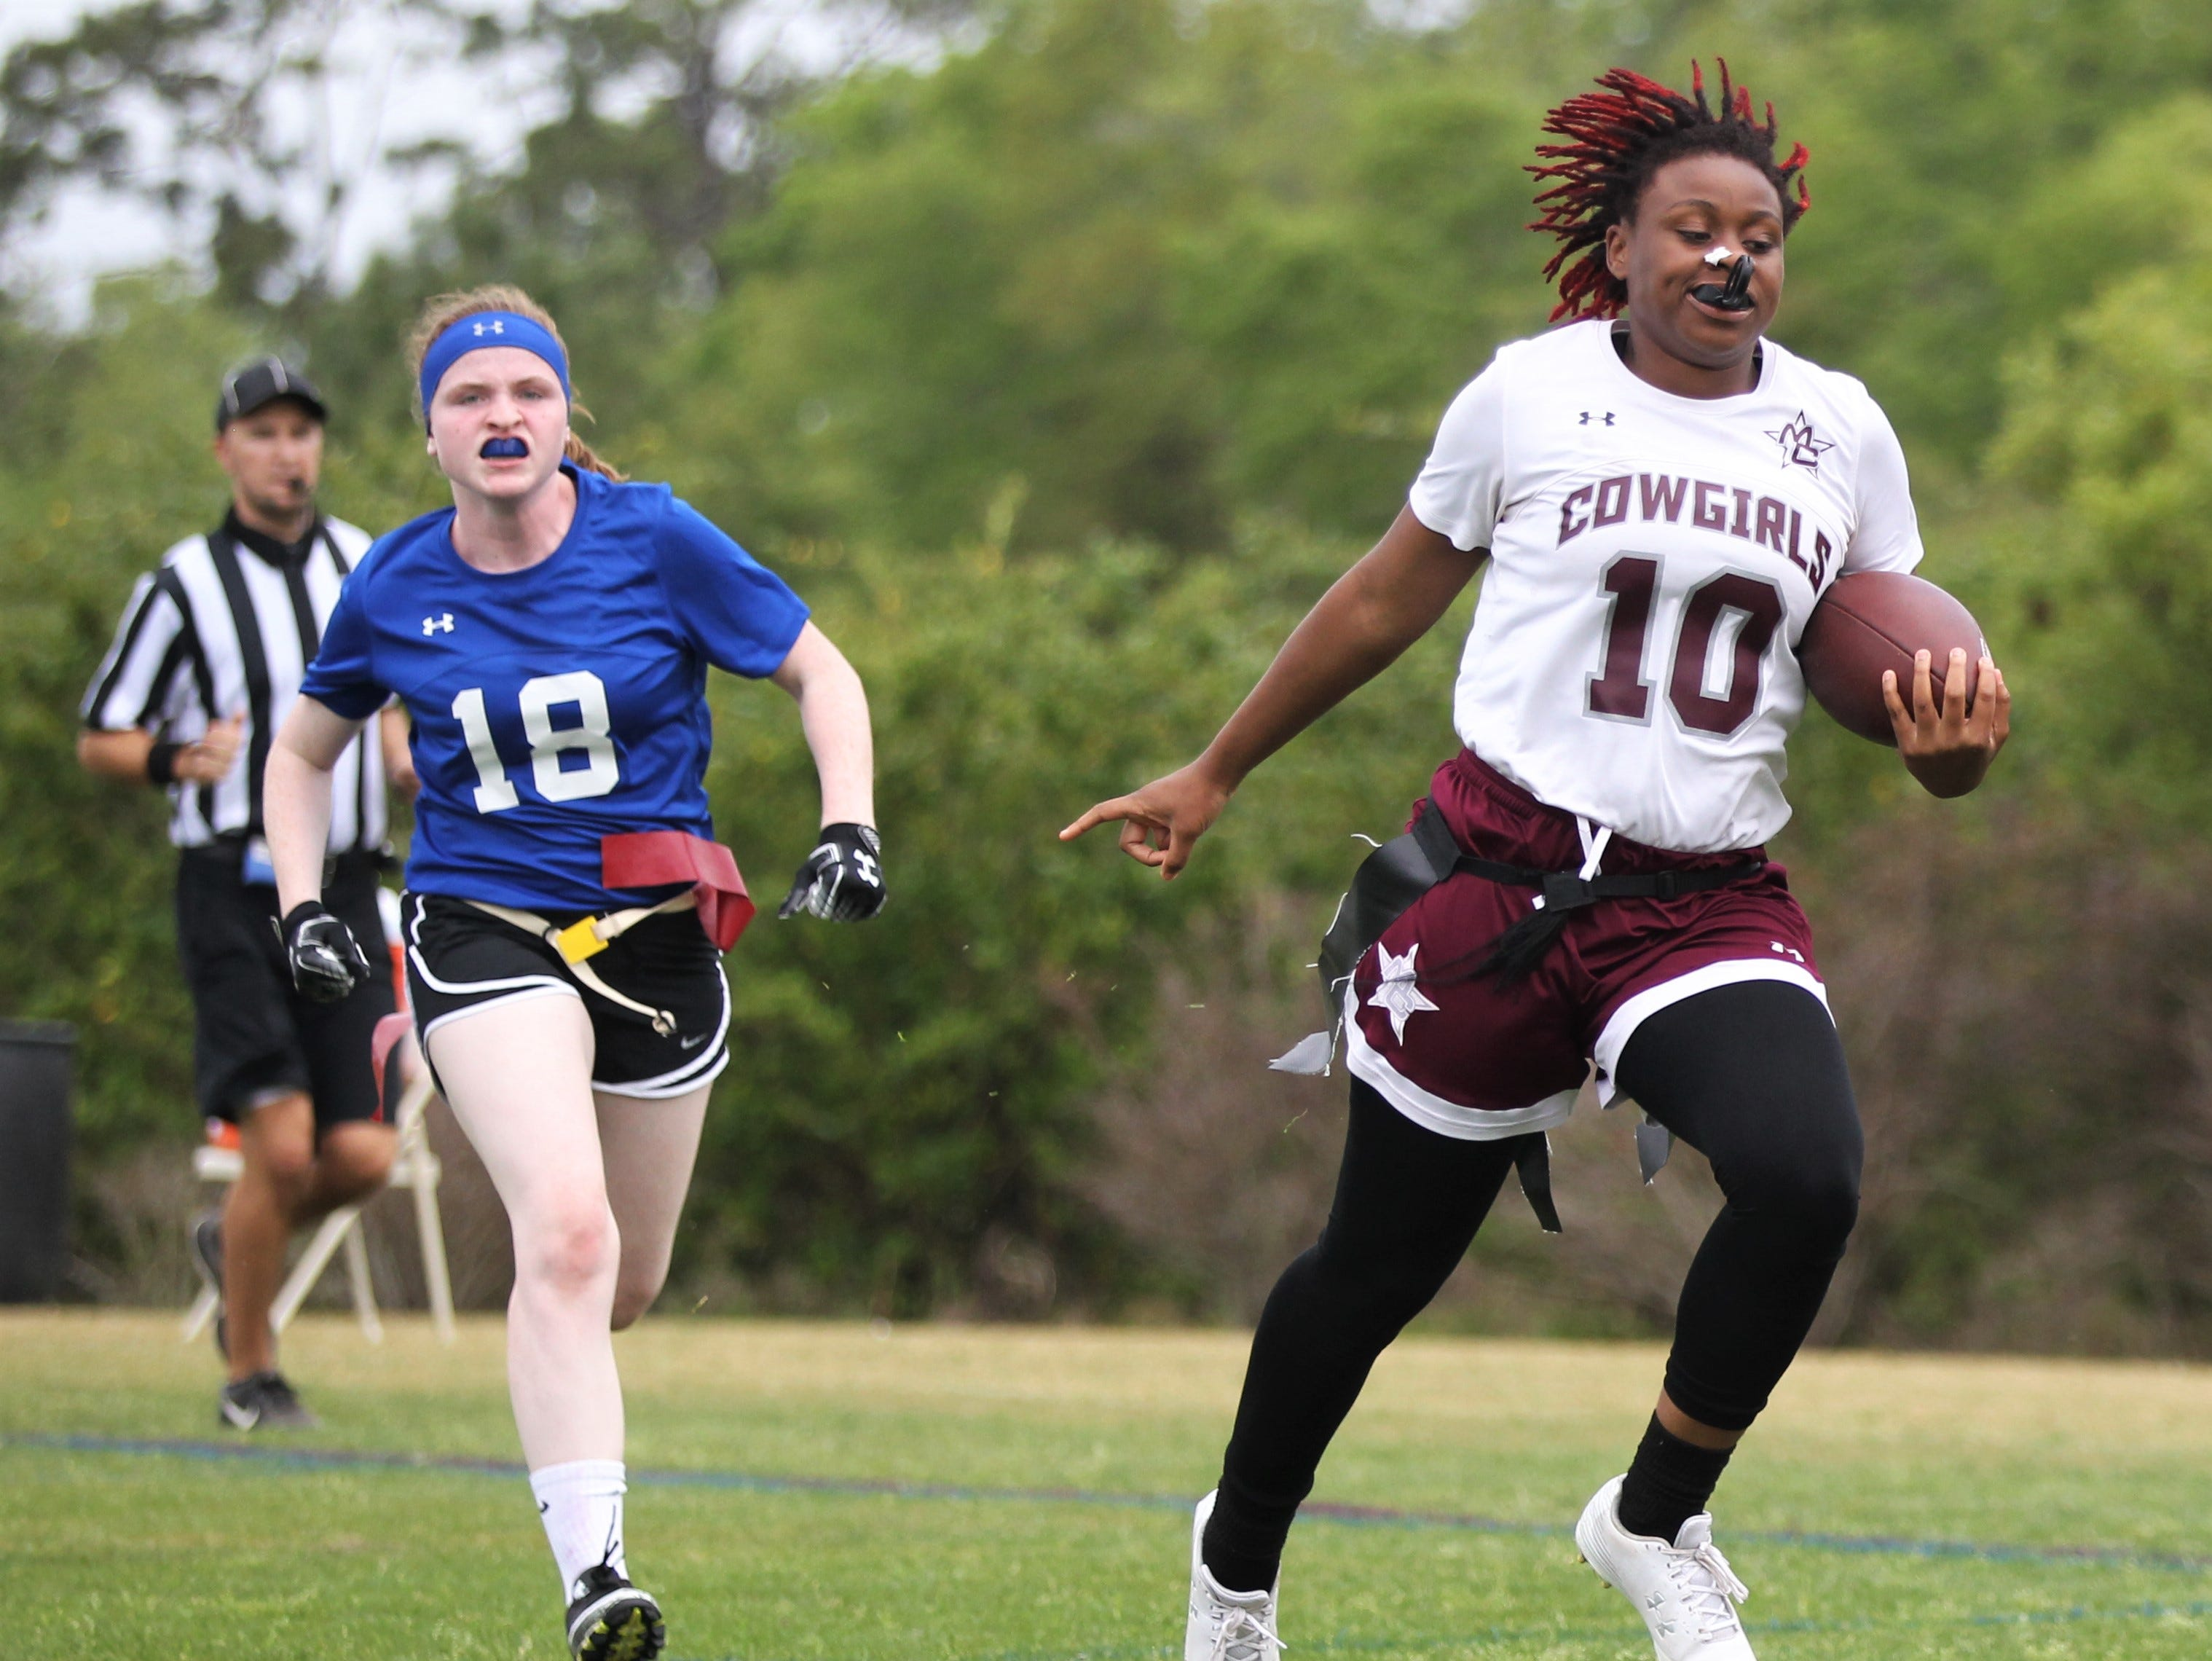 Madison County's Zharia Norwood catches a touchdown pass against Belleview in the 2019 Capital City Classic at the FSU Rec SportsPlex on April 6, 2019.